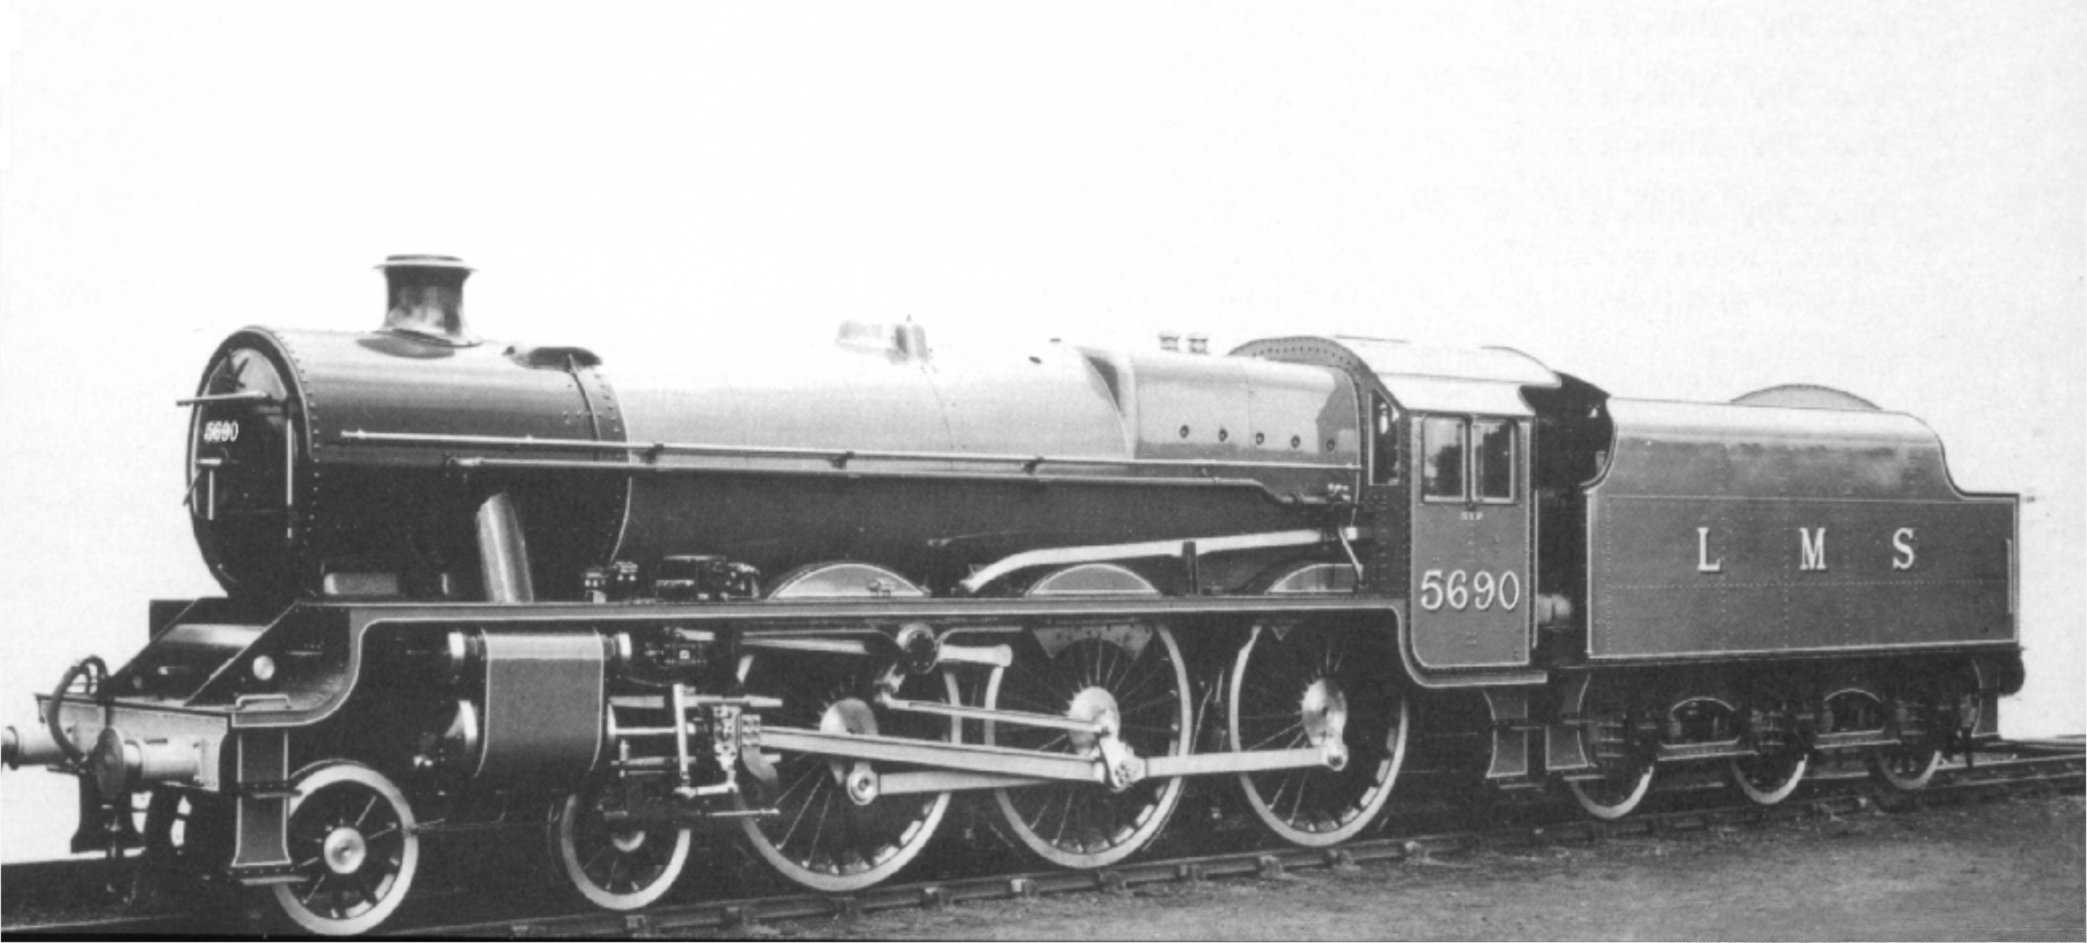 5690 LMS publicity shot, prior to naming